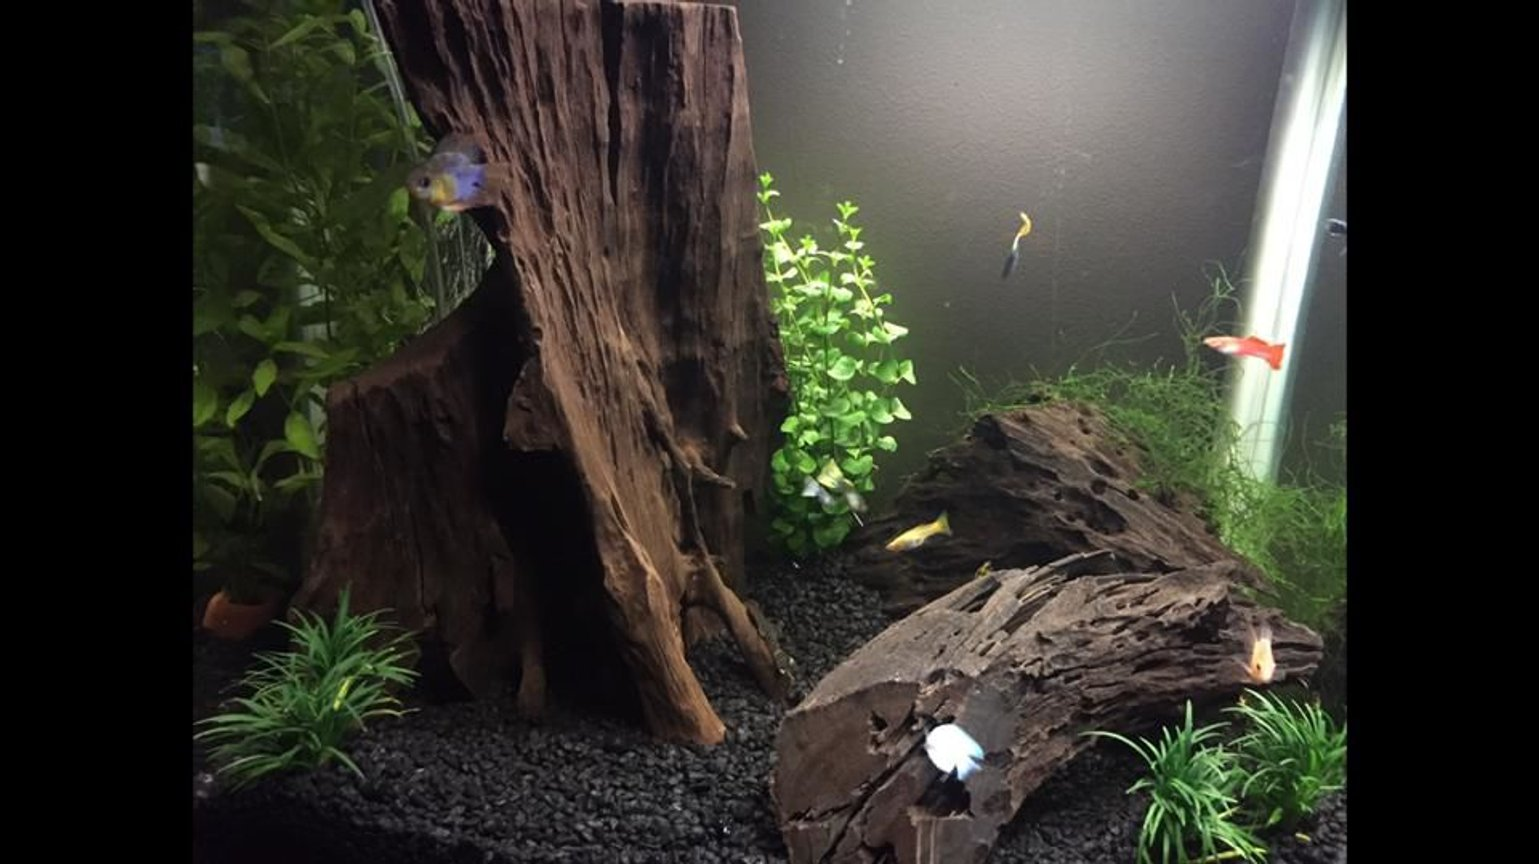 35 gallons freshwater fish tank (mostly fish and non-living decorations) - Love these guys, hope you enjoy my tank as much as me! :)